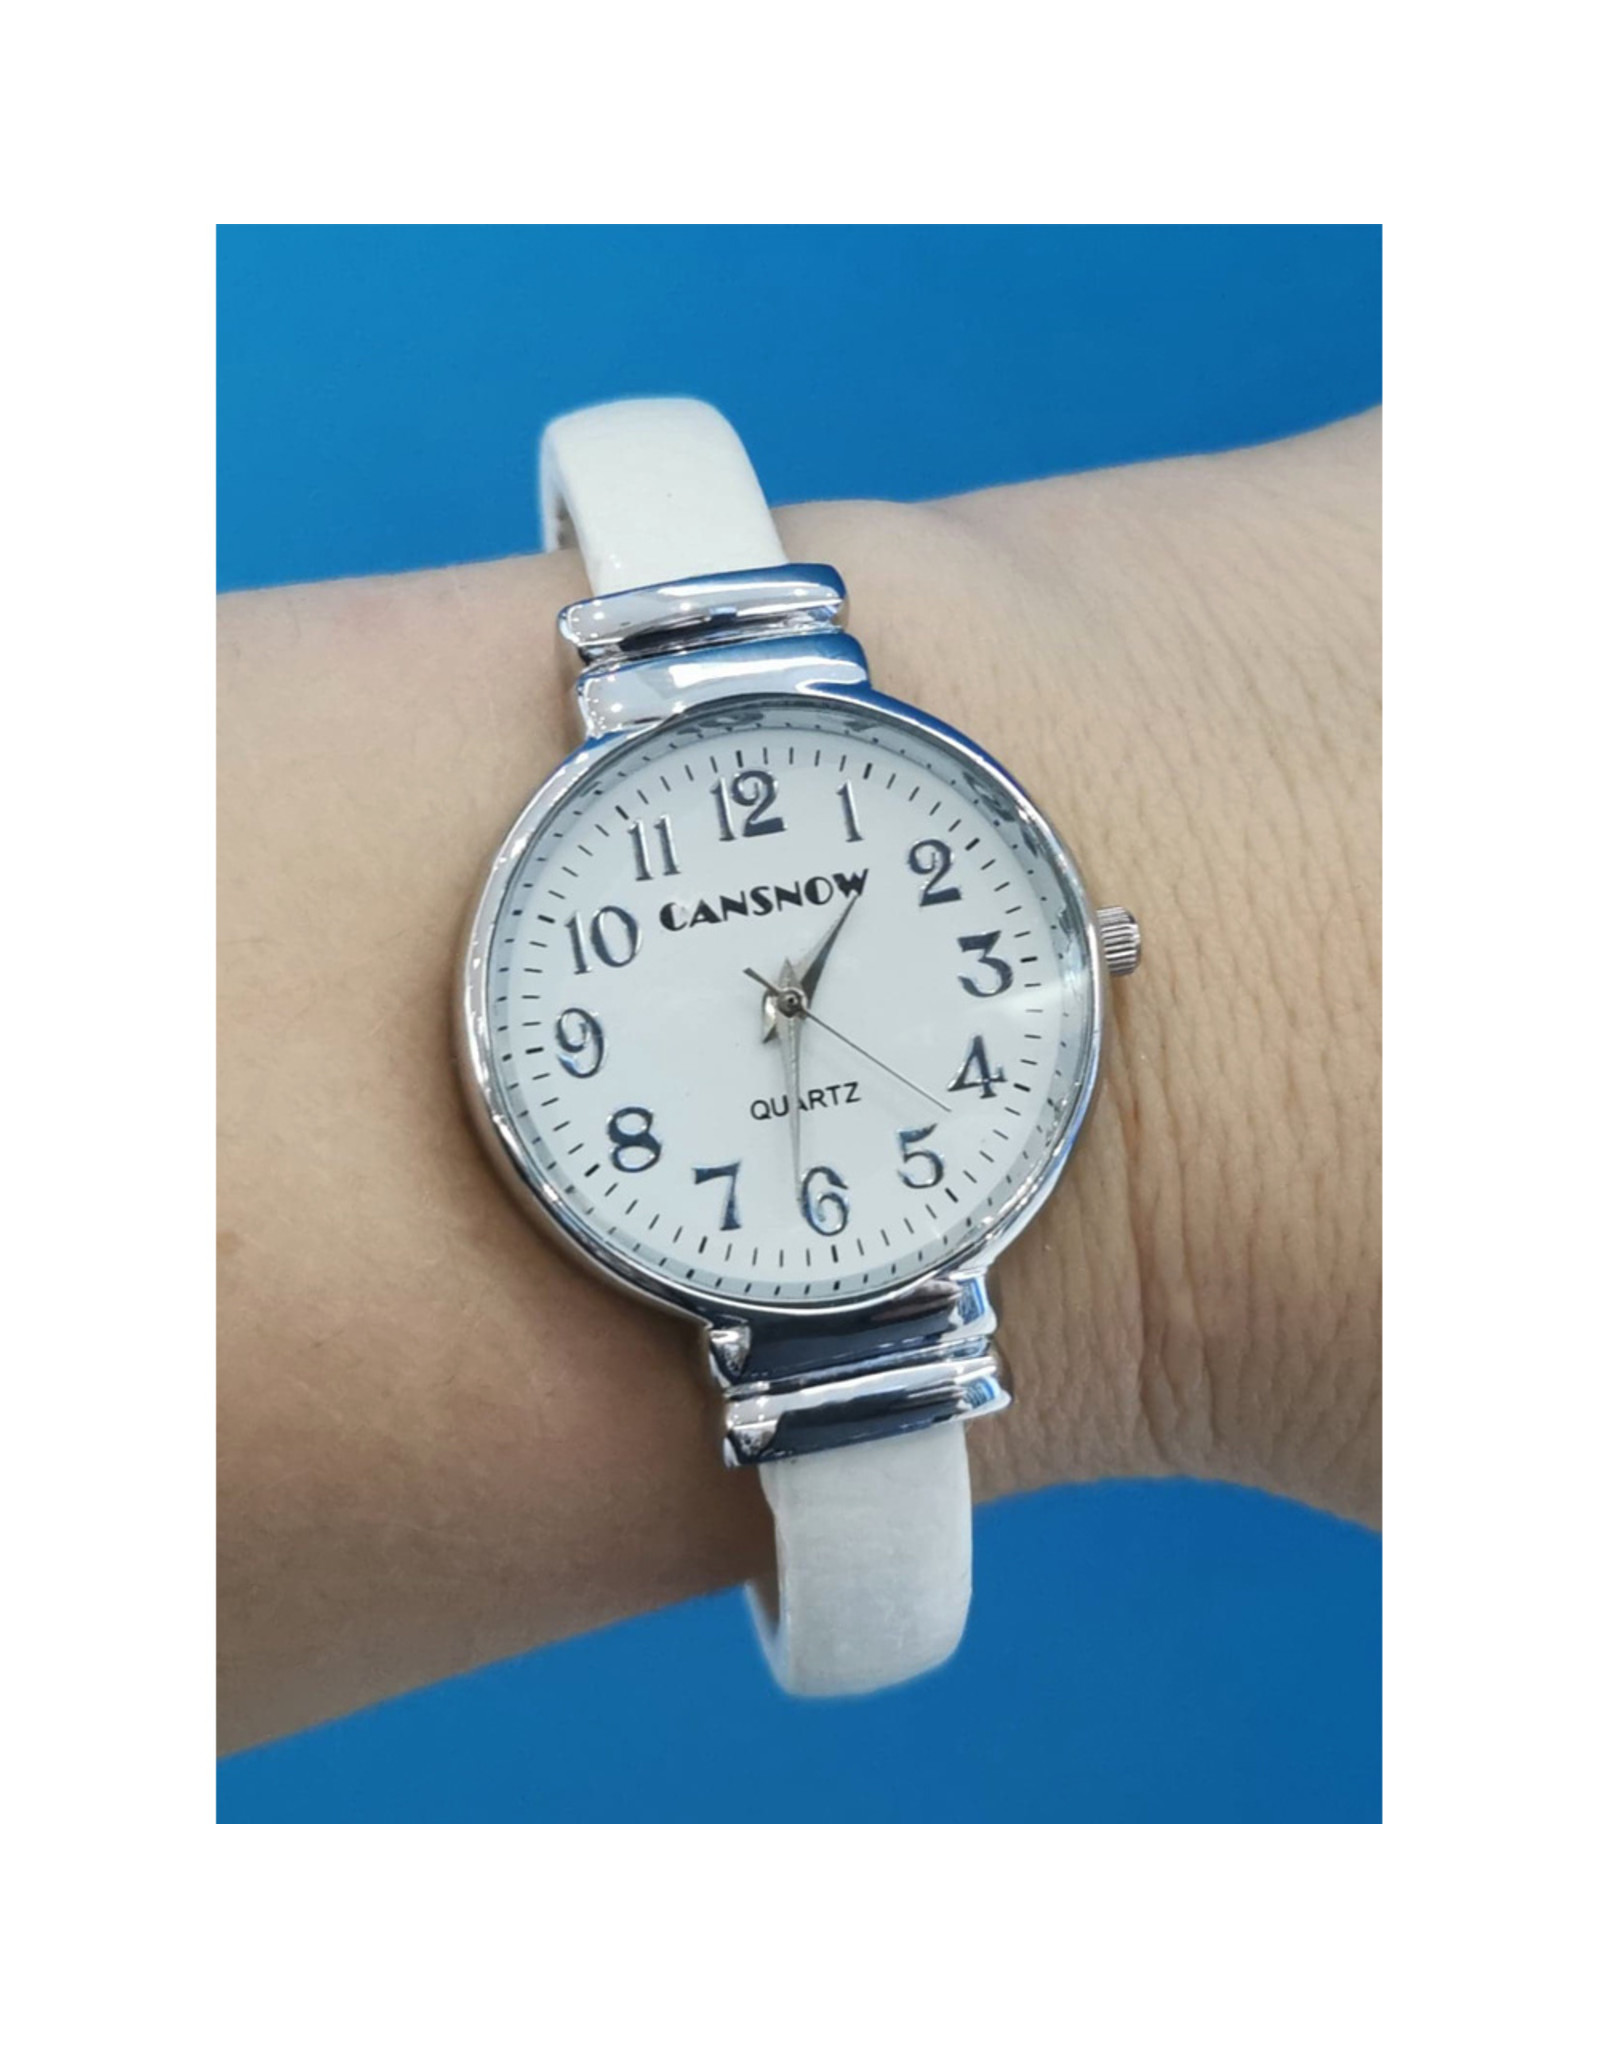 Cansnow Bangle blanche ronde